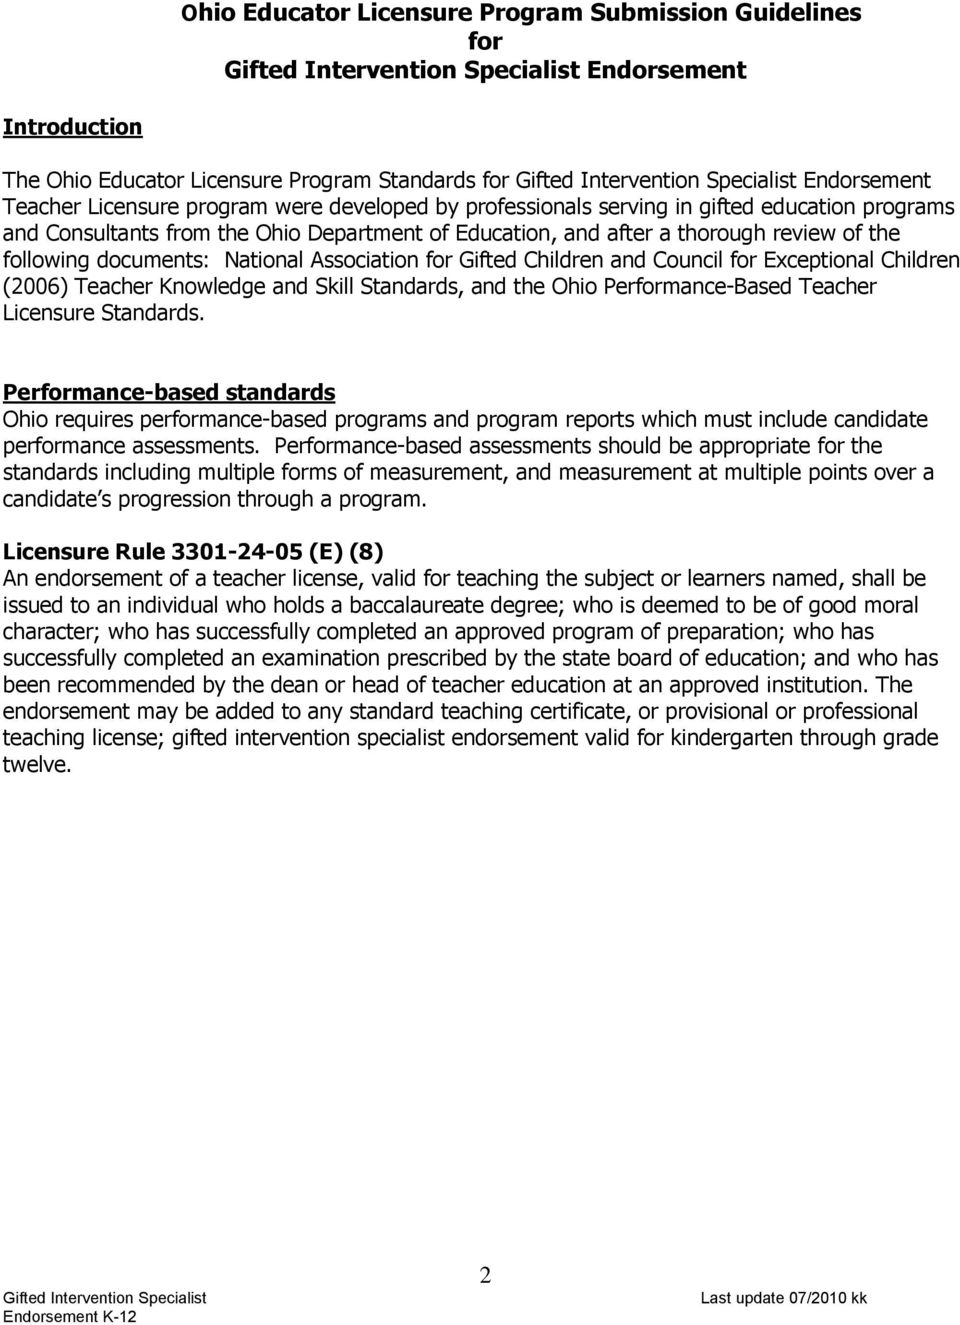 Children and Council for Exceptional Children (2006) Teacher Knowledge and Skill Standards, and the Ohio Performance-Based Teacher Licensure Standards.